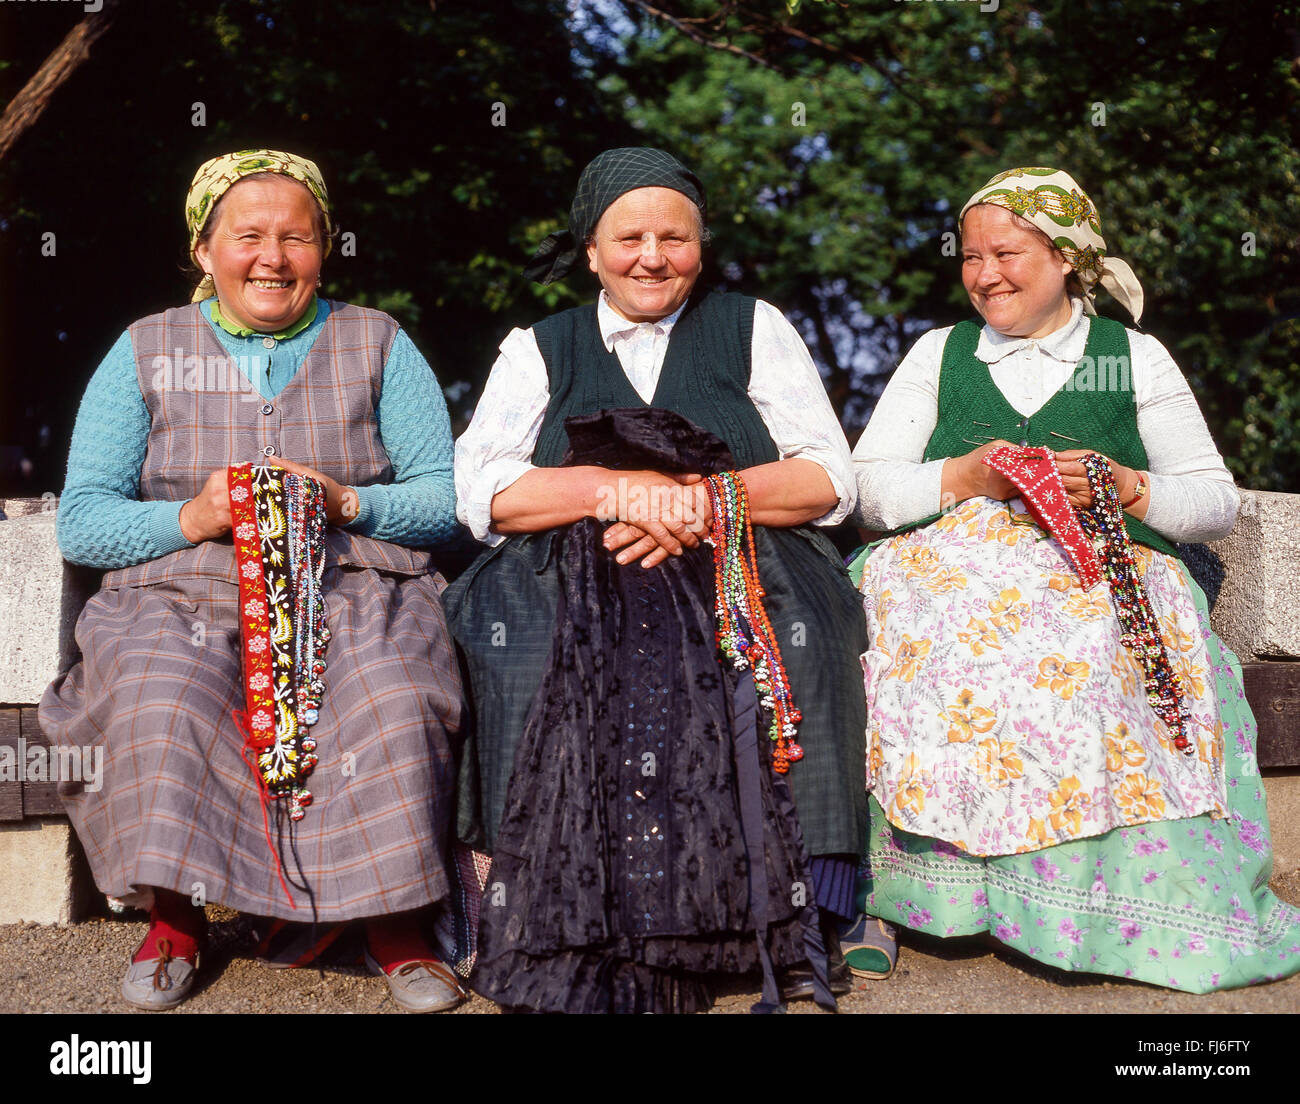 Smiling women in traditional dress in City Park (Városliget), Zugló District, Budapest, Republic of Hungary - Stock Image